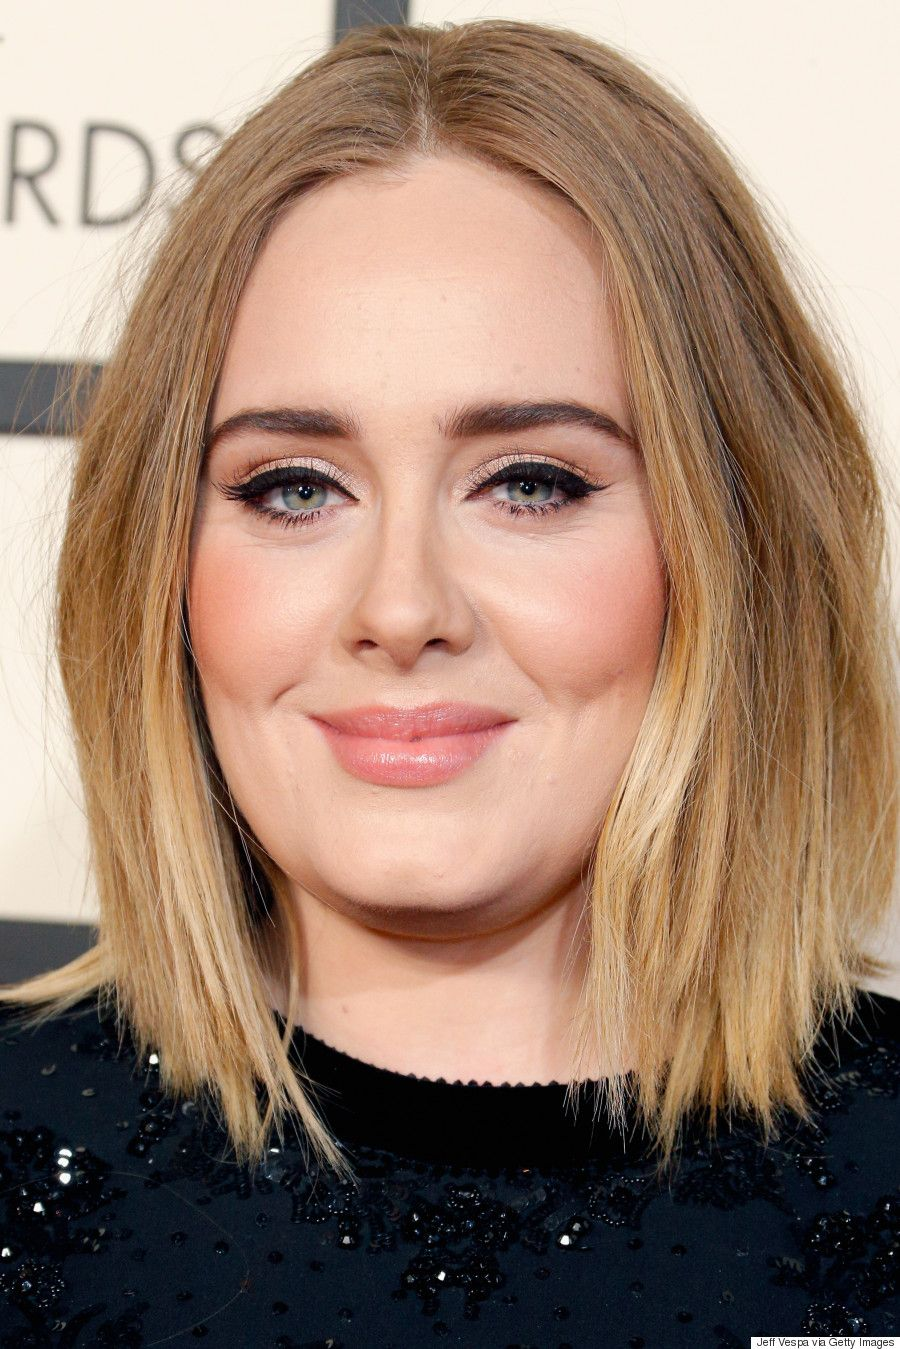 Adele Hair Style: Classic Beauty on the Red Carpet recommendations